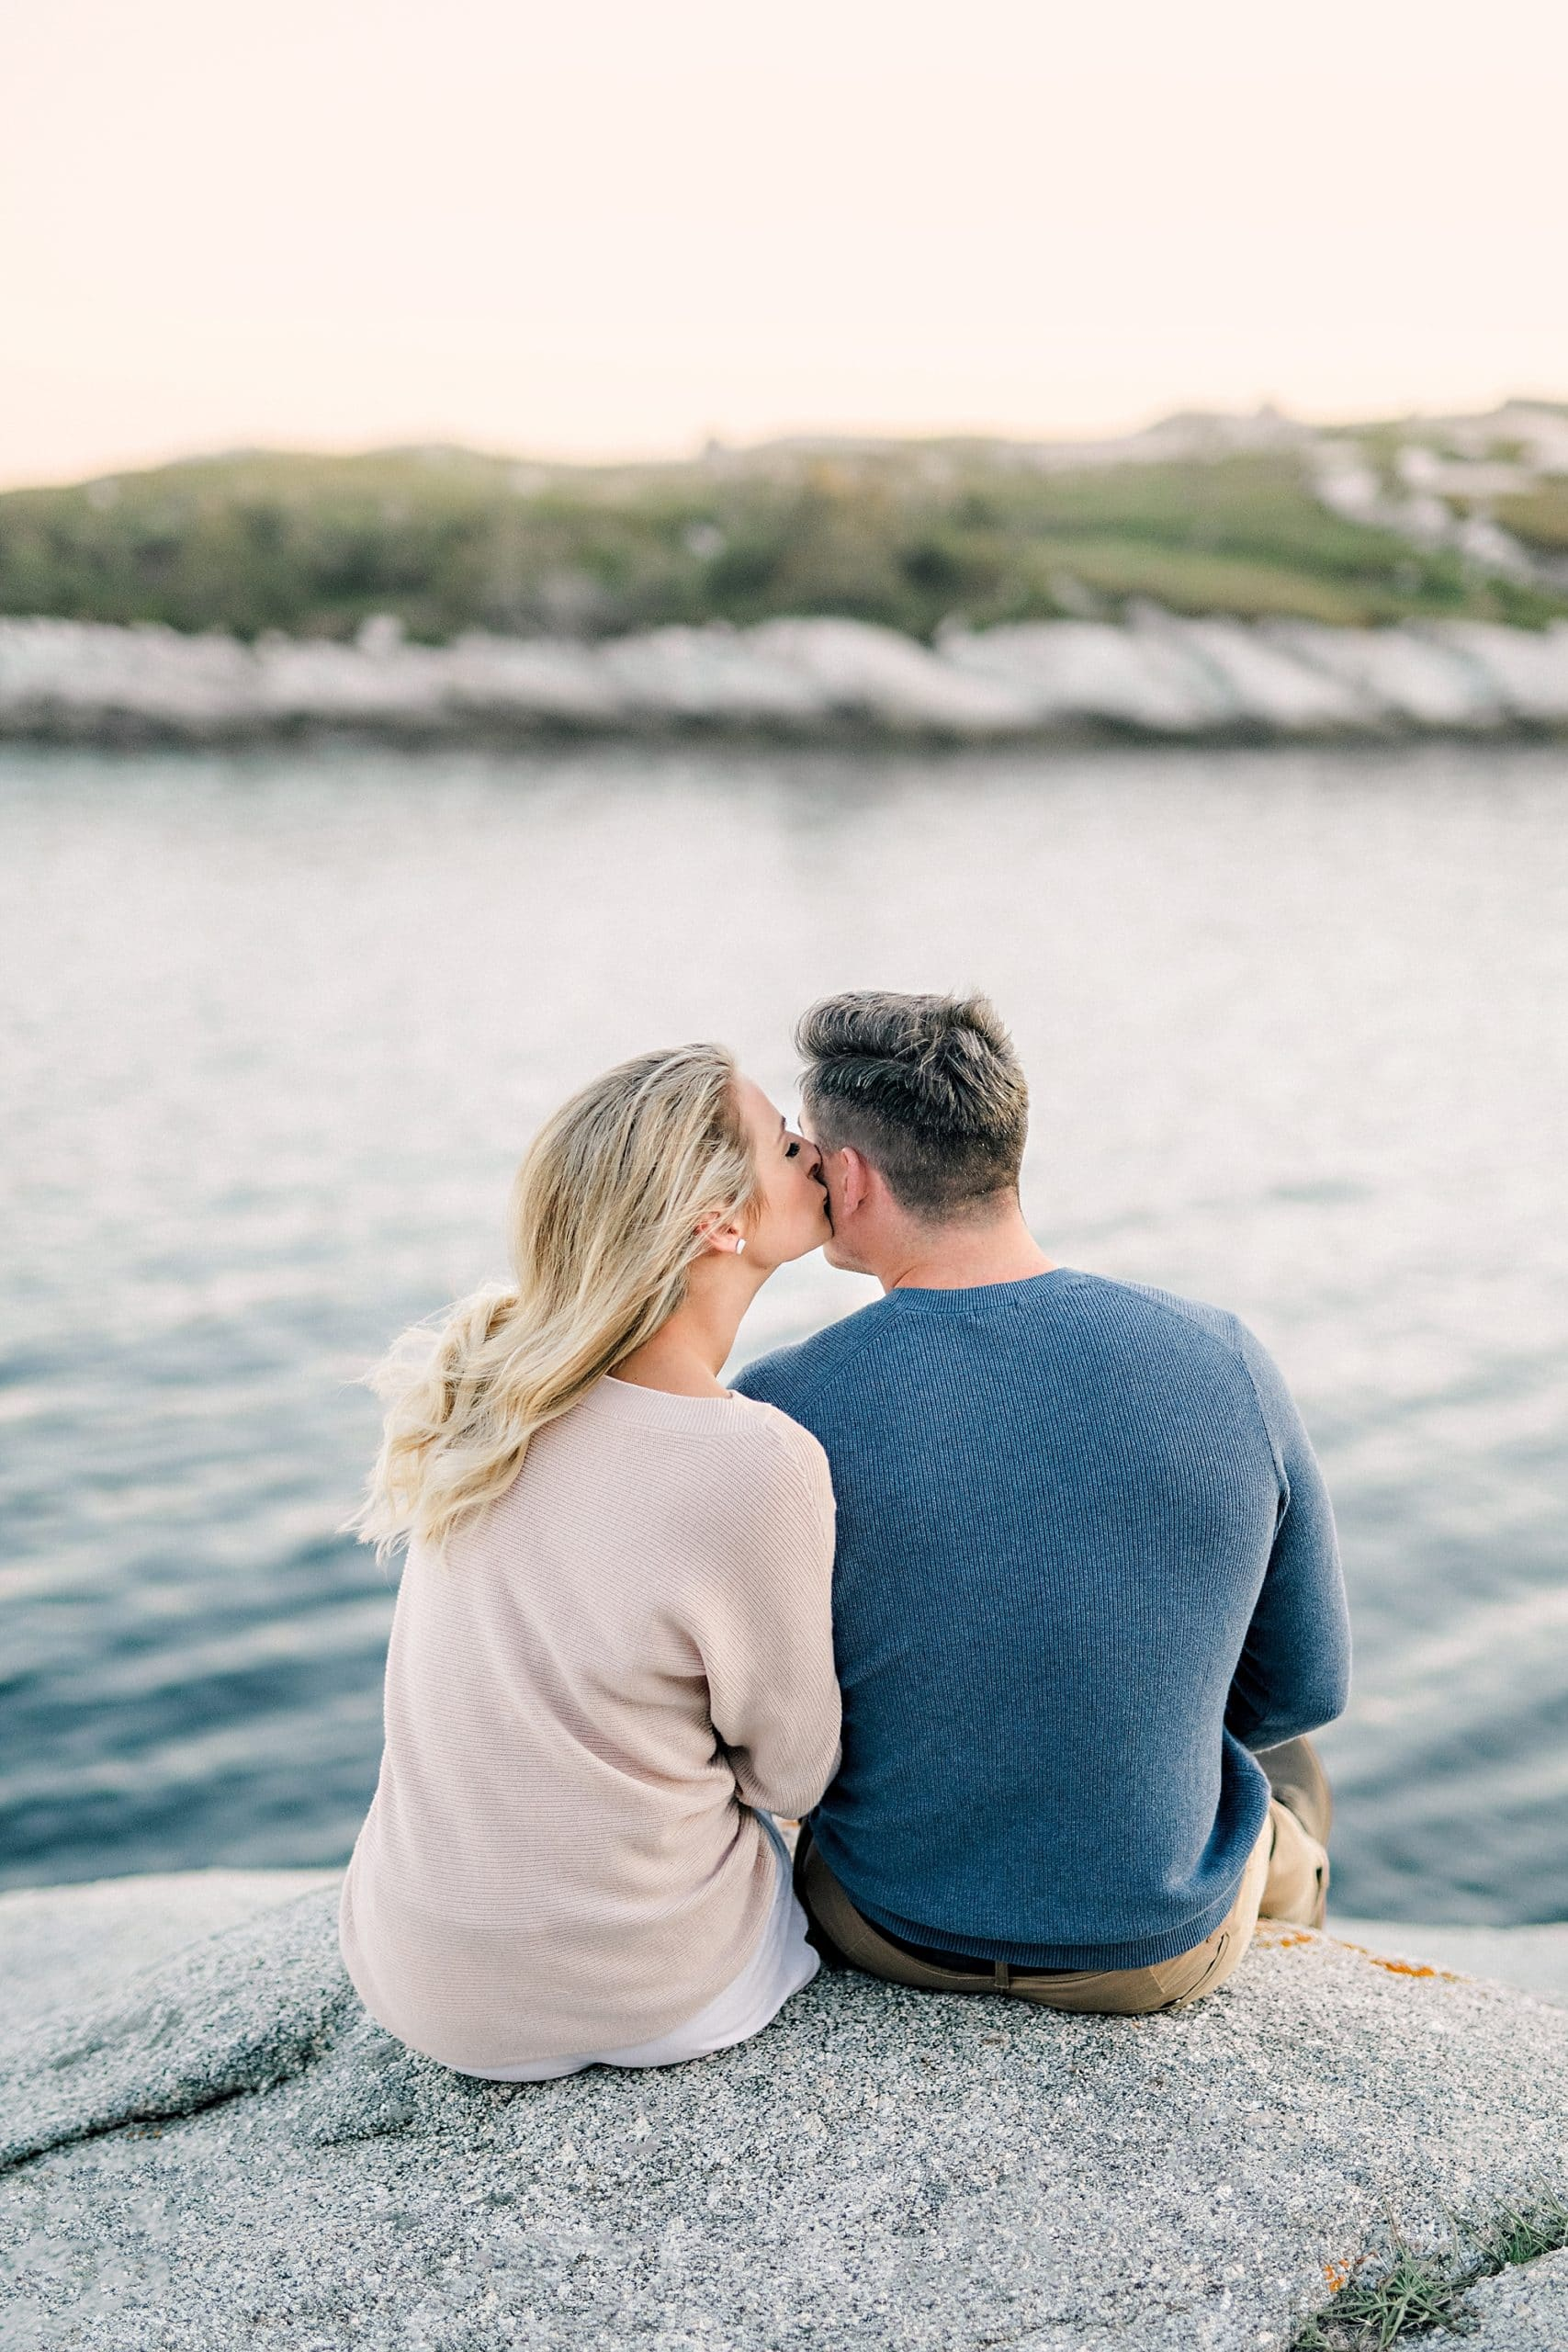 couple watching the water and sunset cozy in sweaters kissing on the cheek